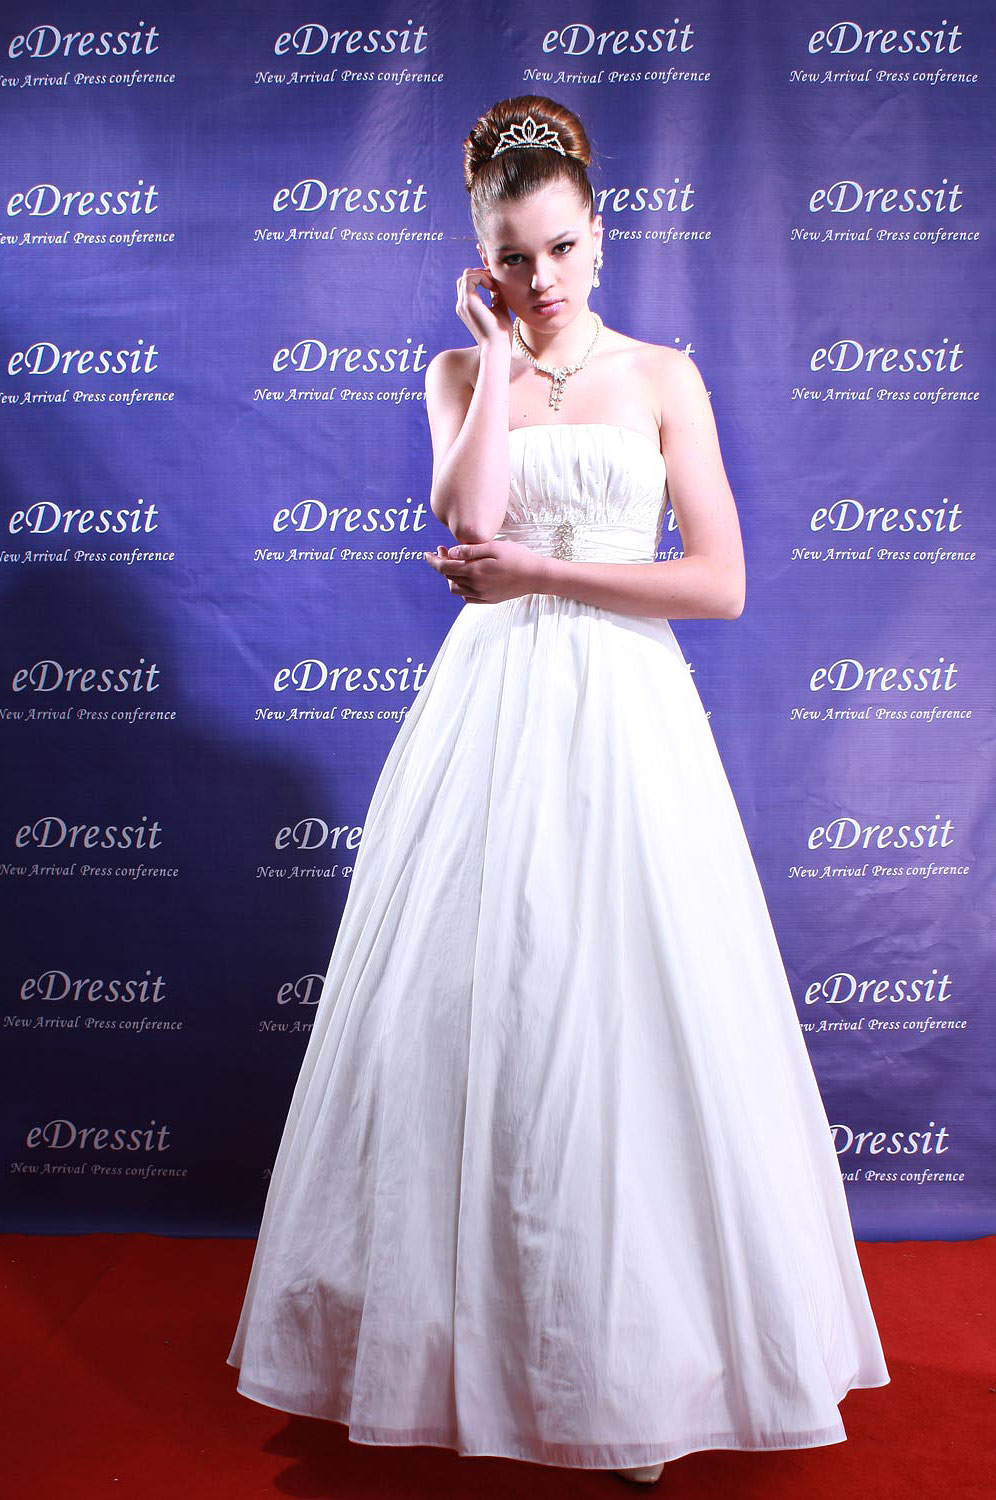 eDressit White Prom Gown Wedding Dress (Custom-made) (01080407)